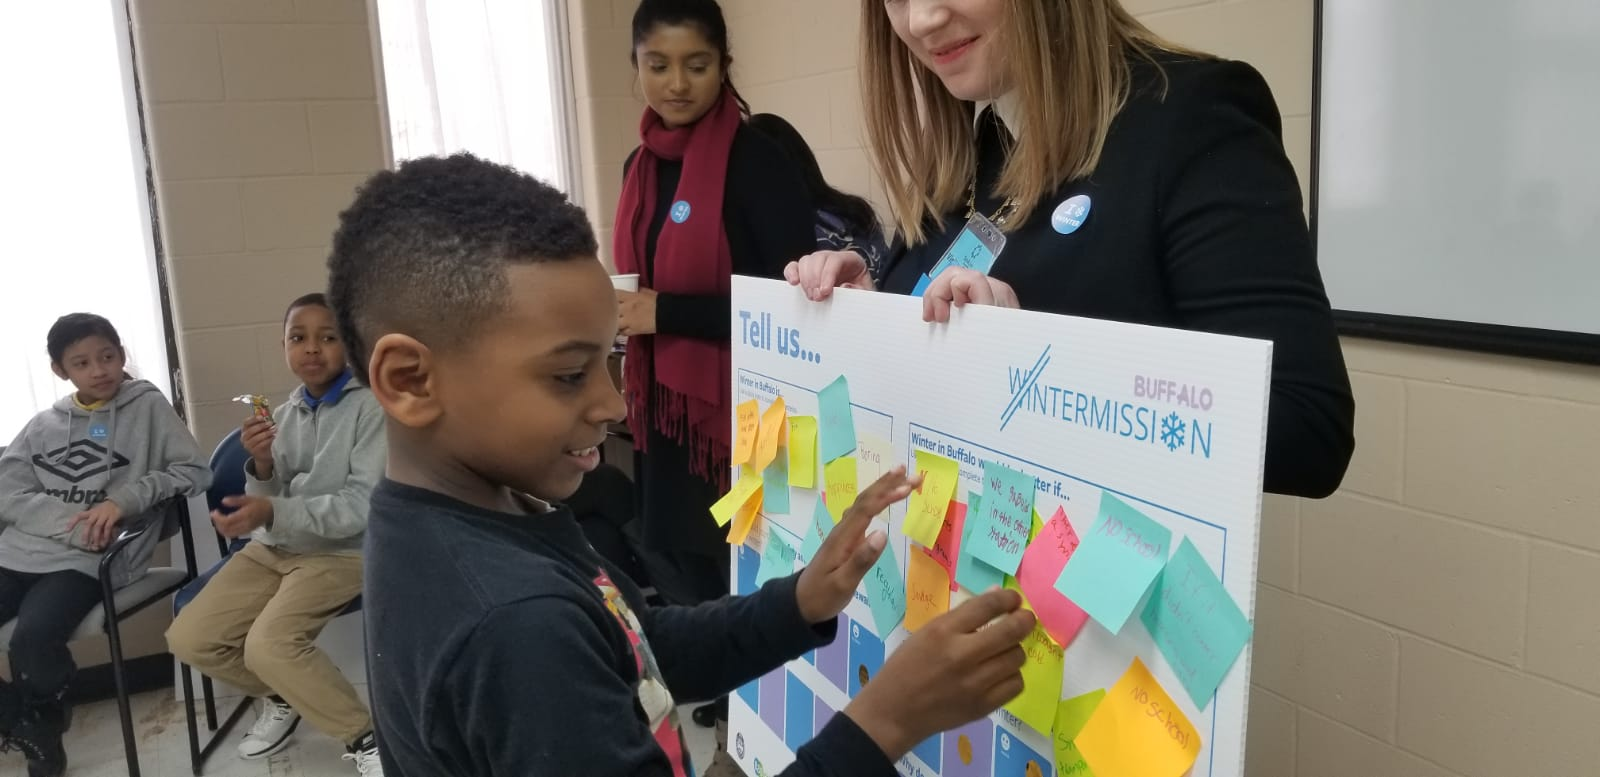 A boy attaching a post it note to a poster board